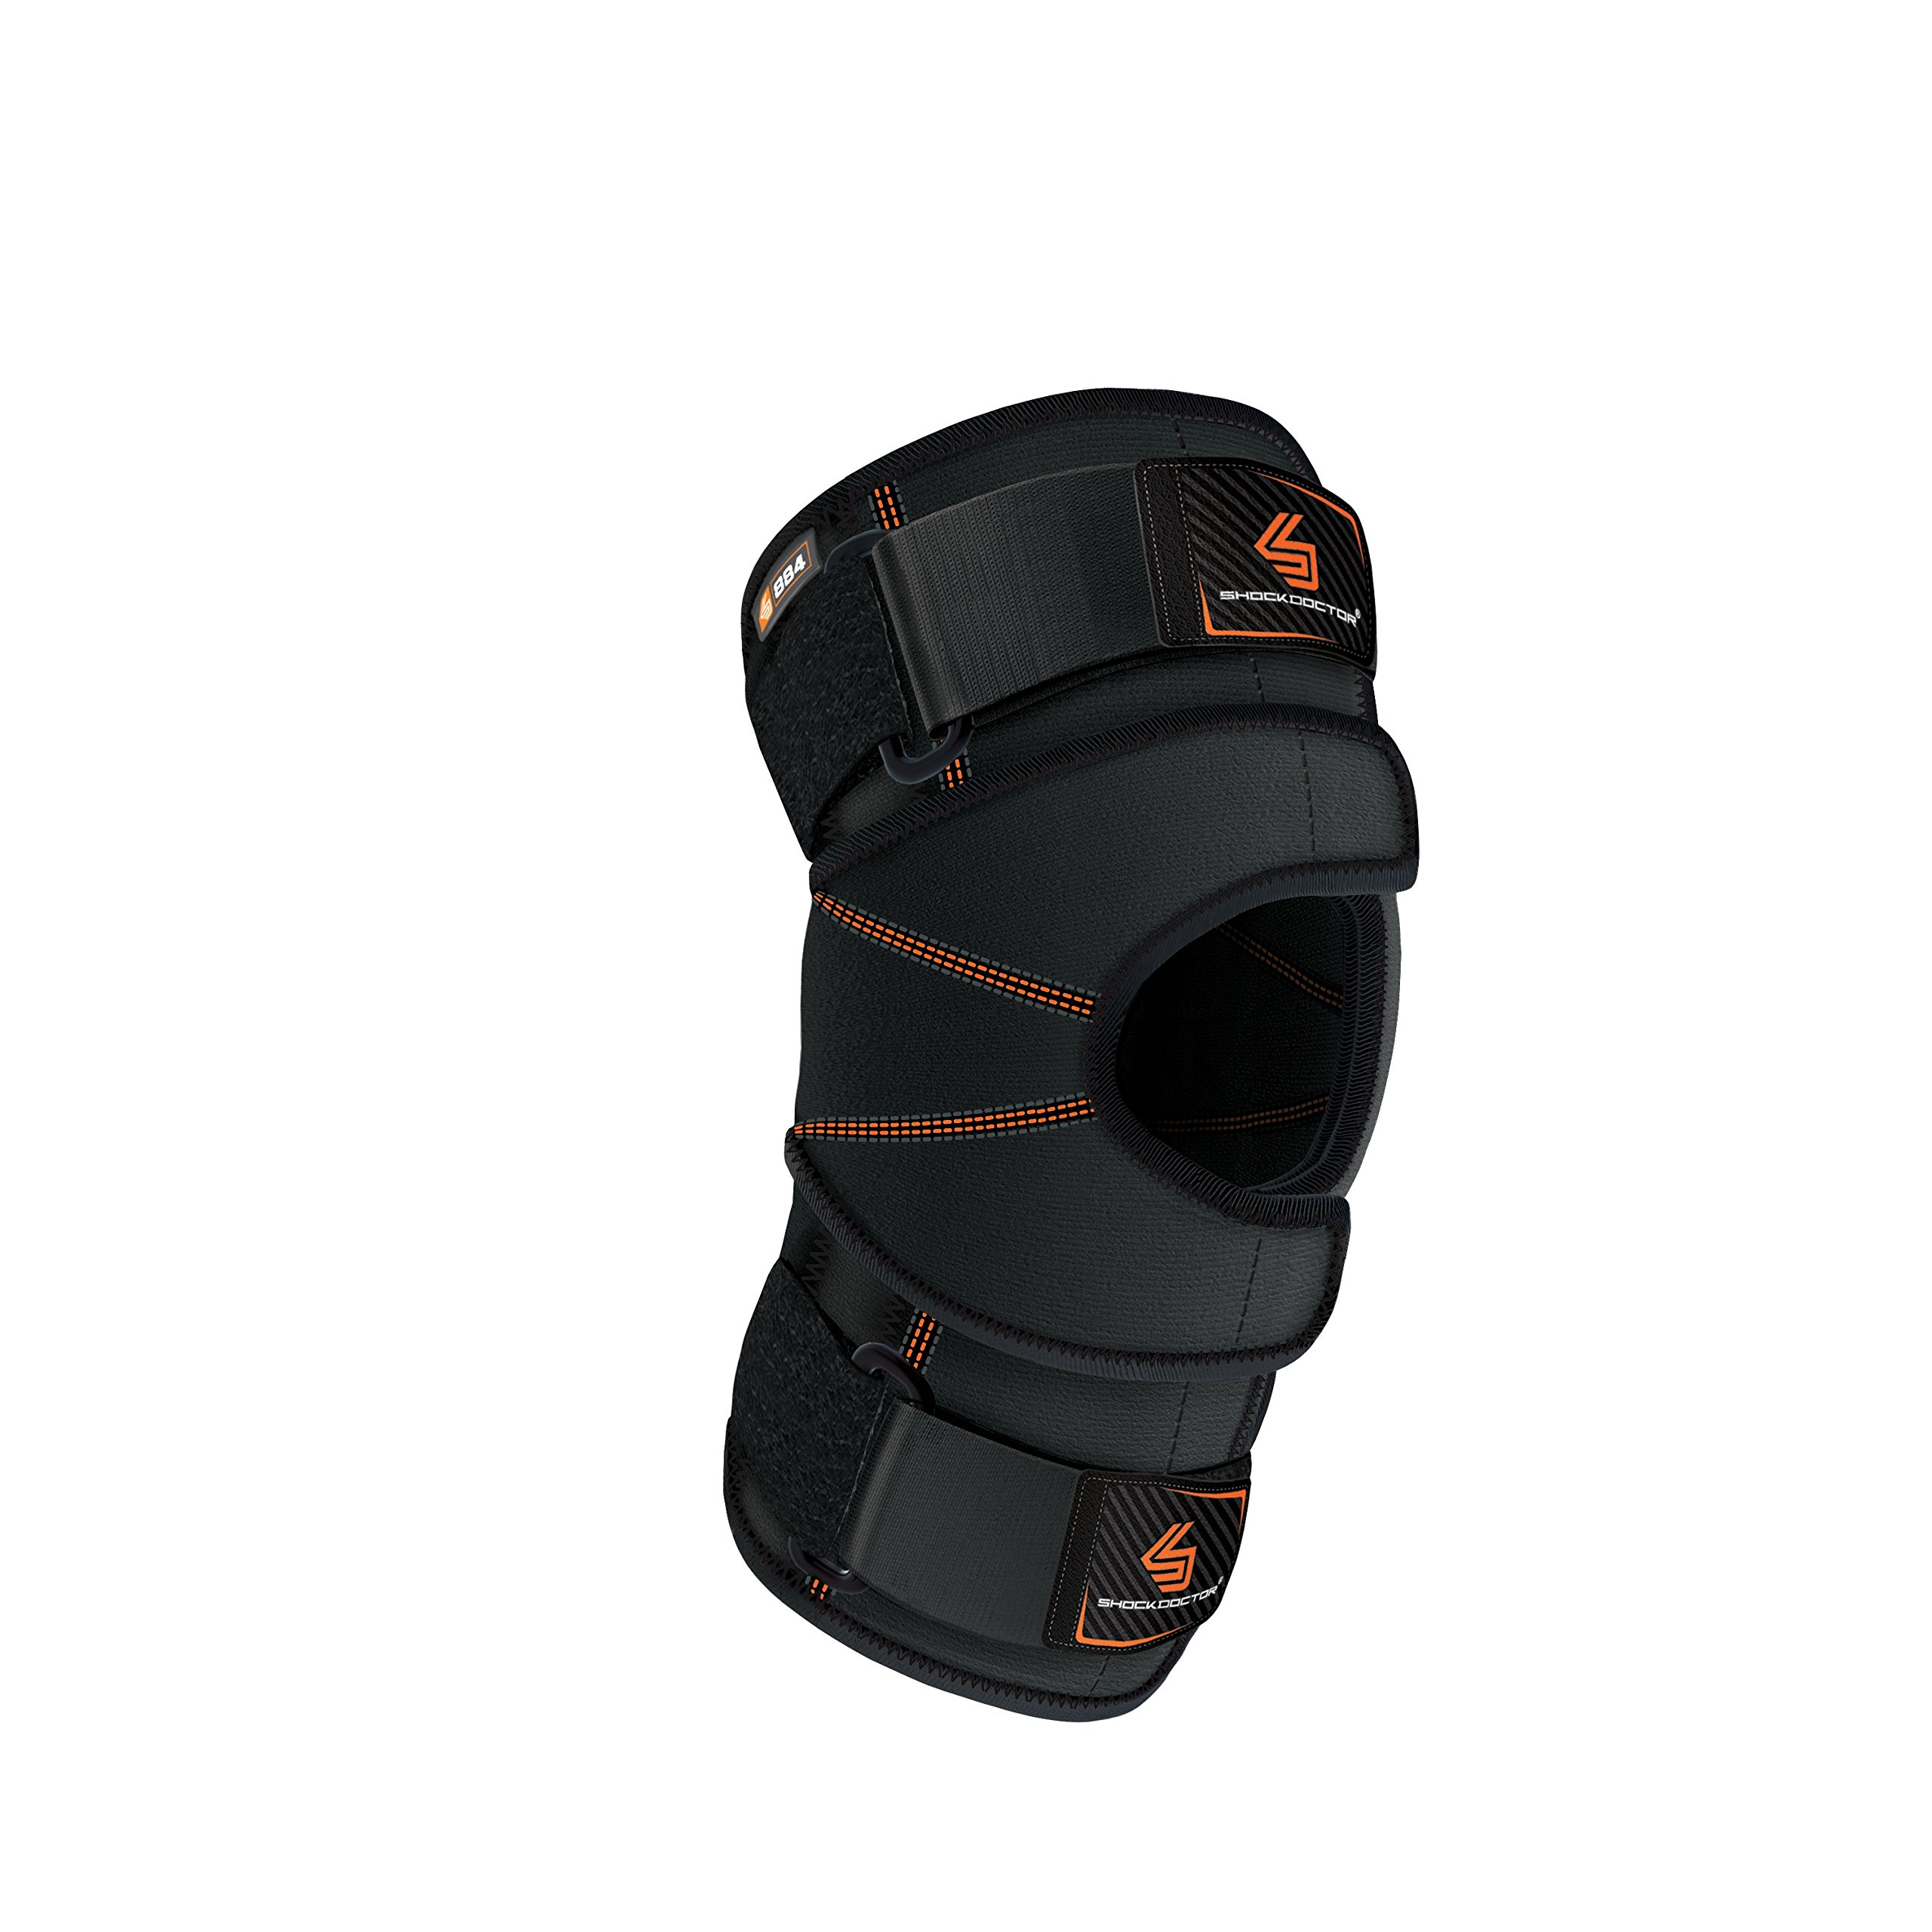 Shock Doctor 884 Versatile Knee Wrap with Stays, Black, Large by Shock Doctor